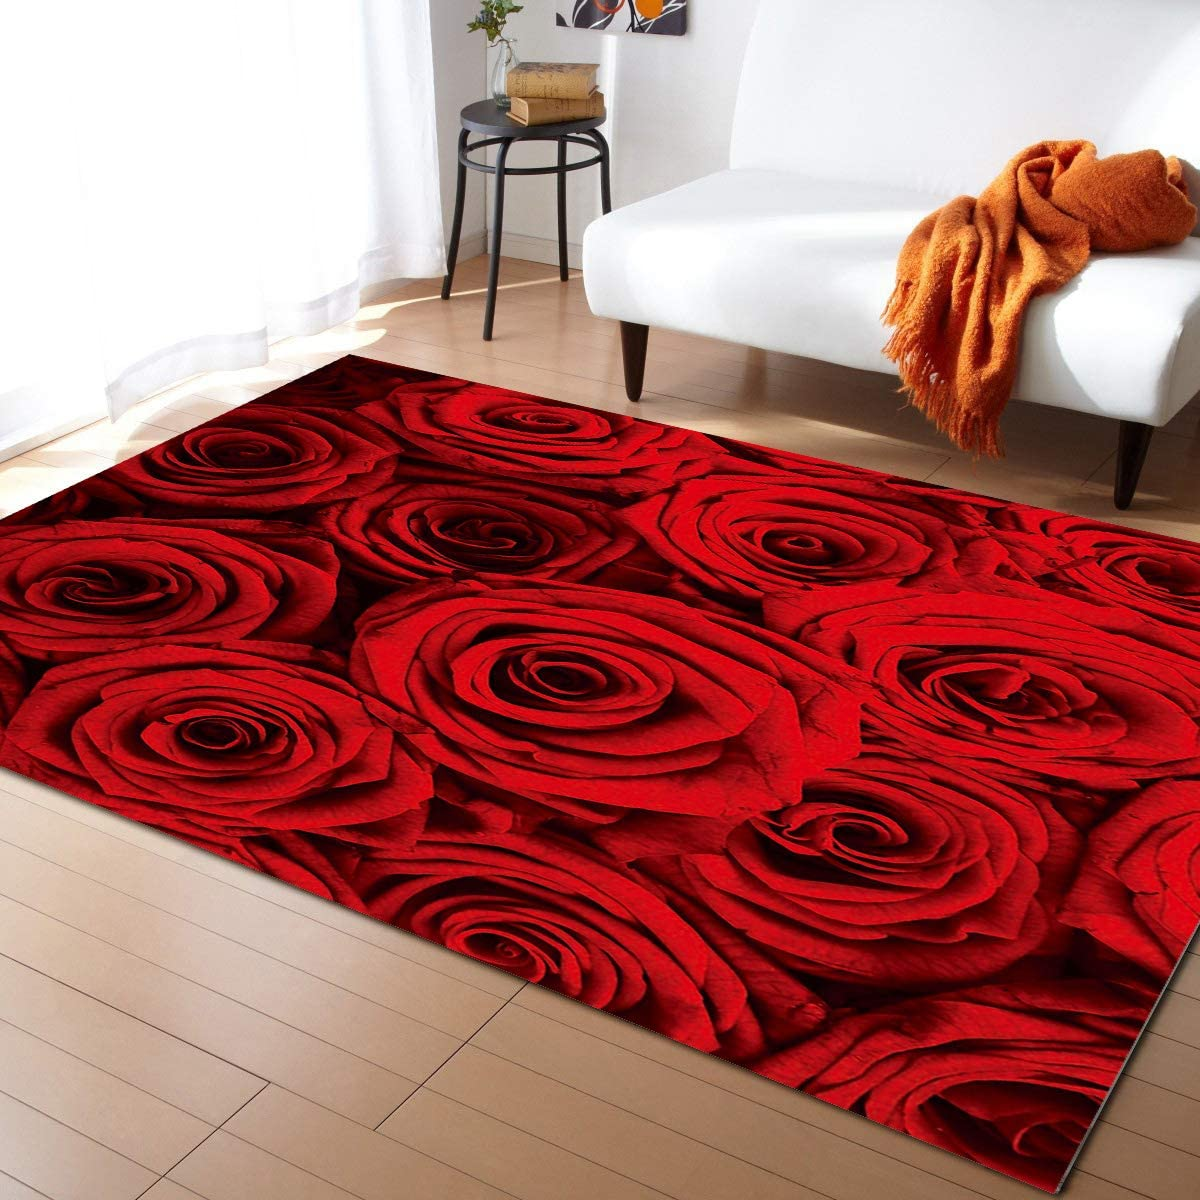 ARTSHOWING Floral Area Rug Decorative Branded goods Livi Carpets We OFFer at cheap prices for Non-Slip